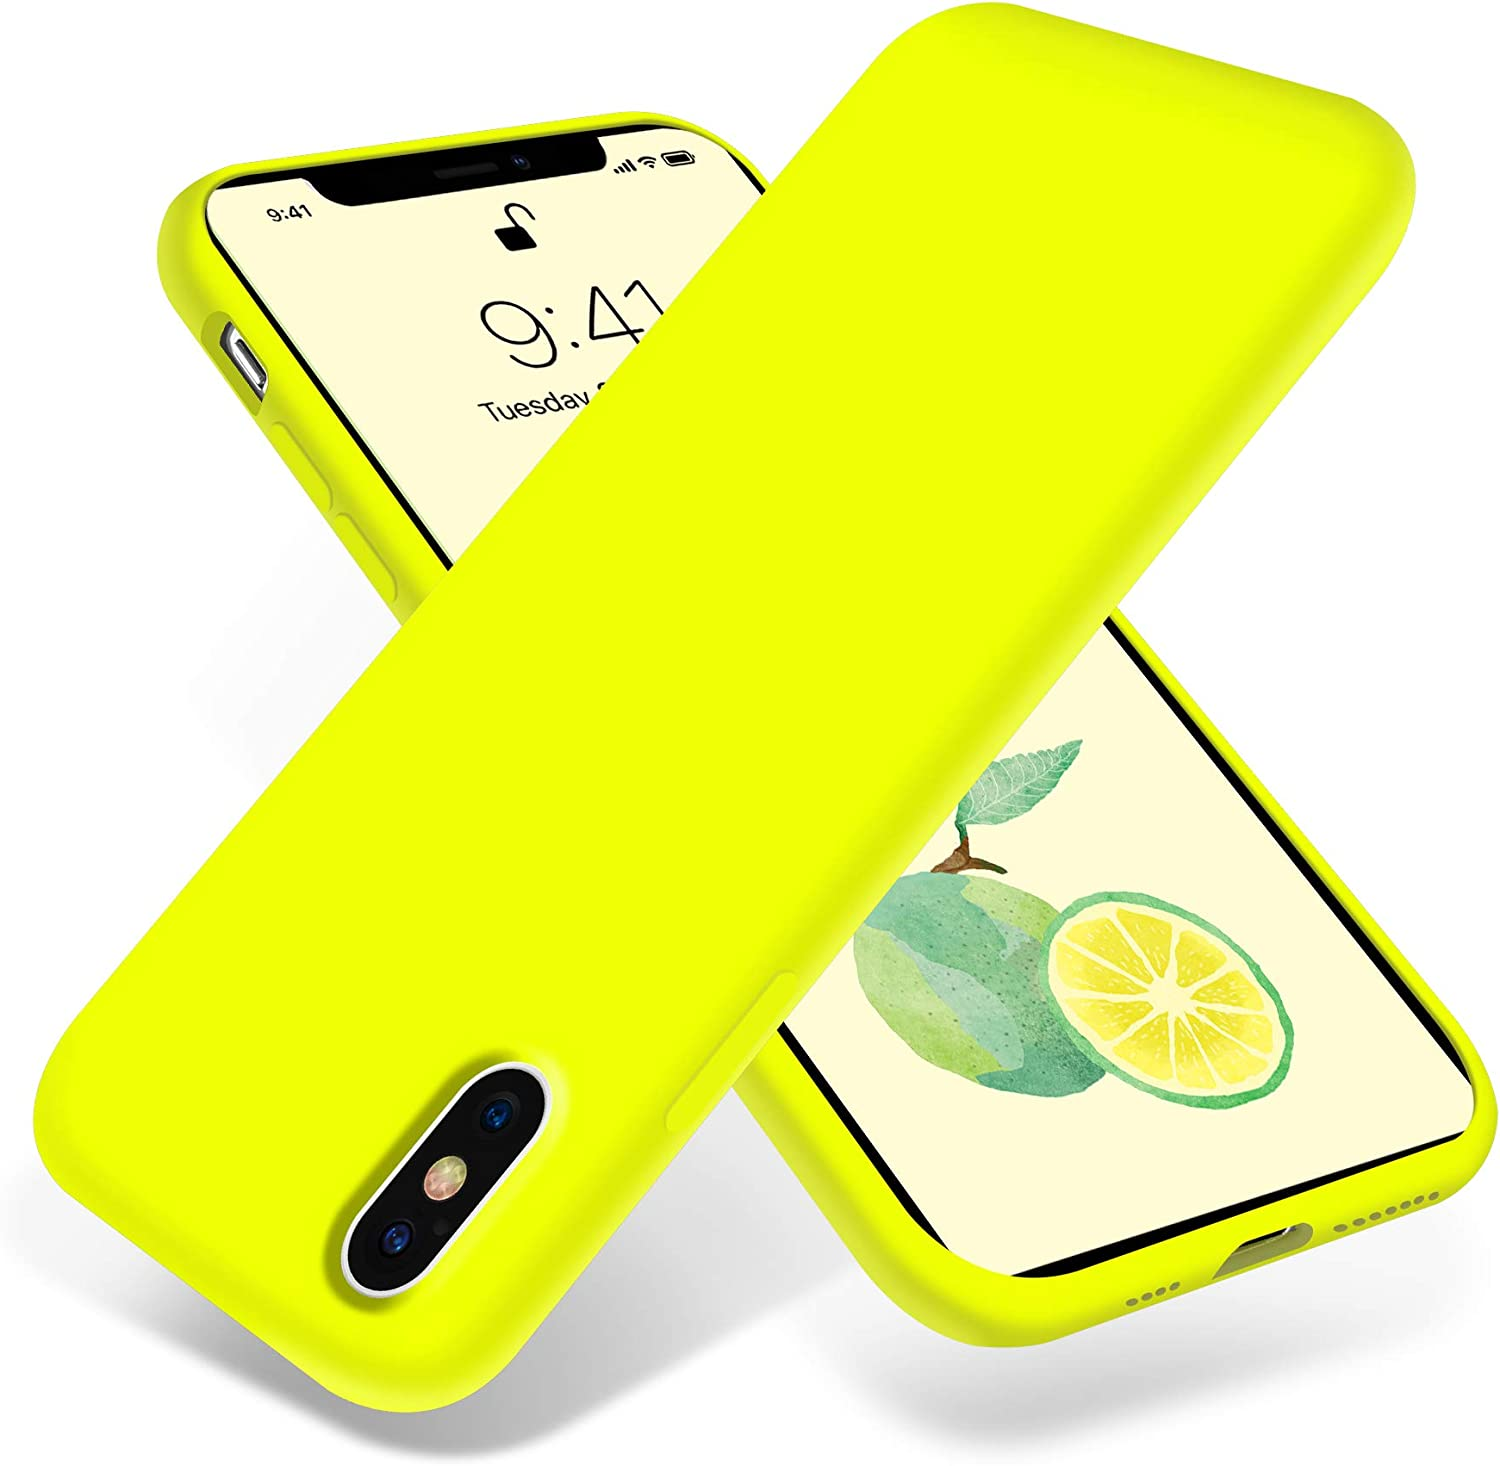 OTOFLY iPhone Xs Max Case,Ultra Slim Fit iPhone Case Liquid Silicone Gel Cover with Full Body Protection Anti-Scratch Shockproof Case Compatible with iPhone Xs Max,(Fluorescent Yellow)